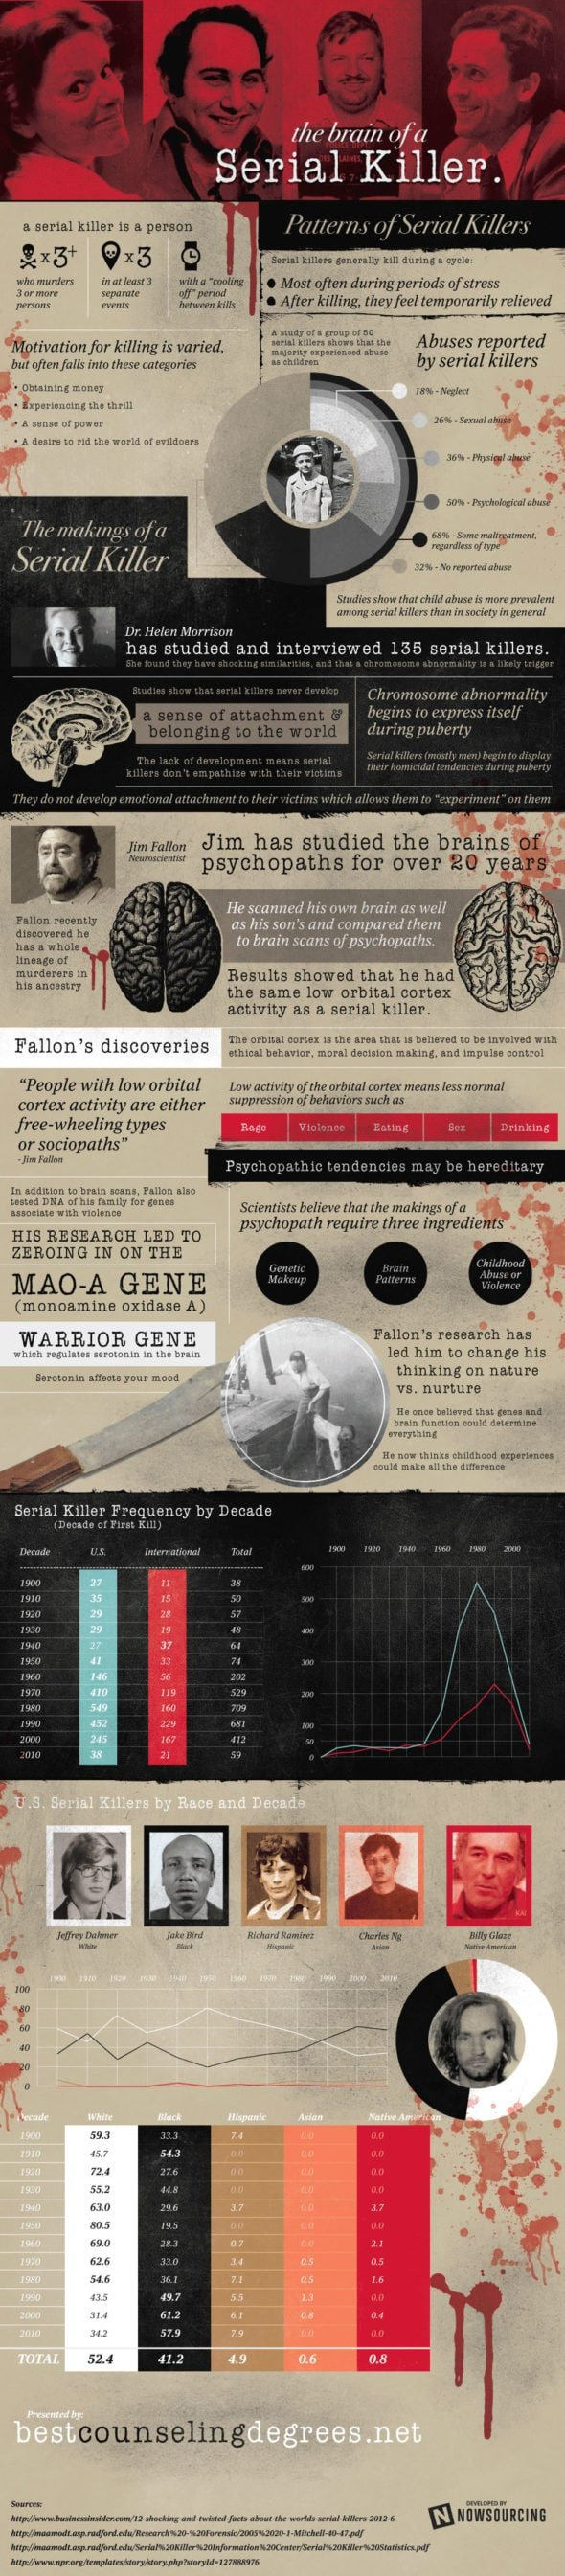 brain-of-a-serial-killer-infographic